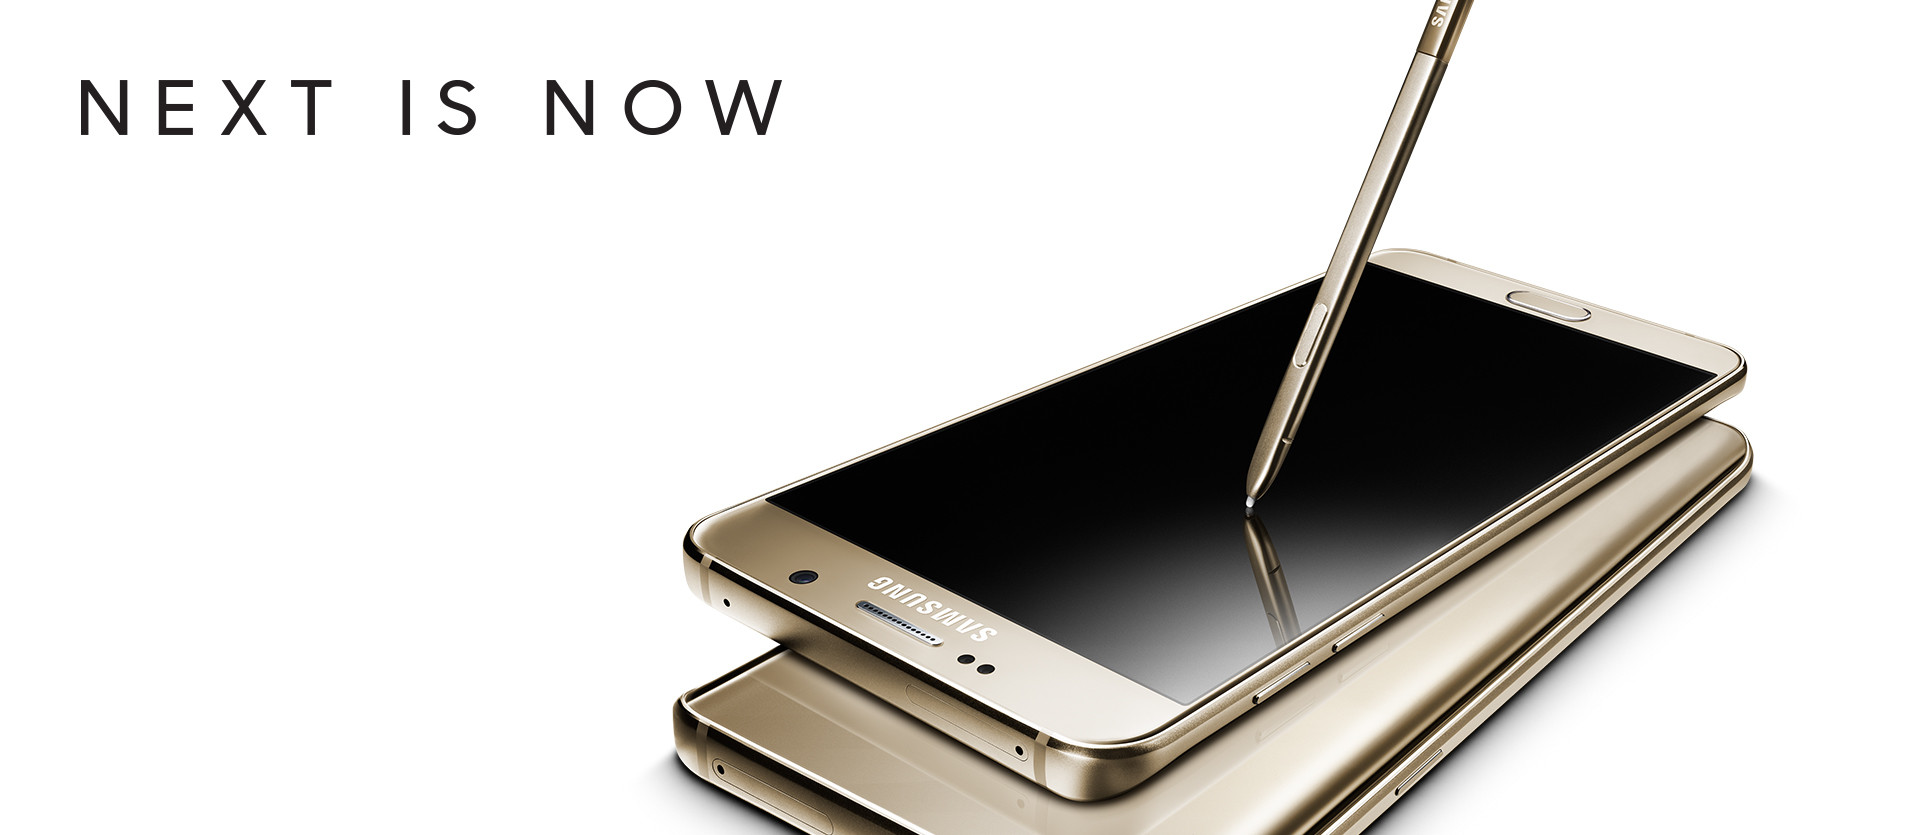 10 Things You Can Do with Samsung Note 5